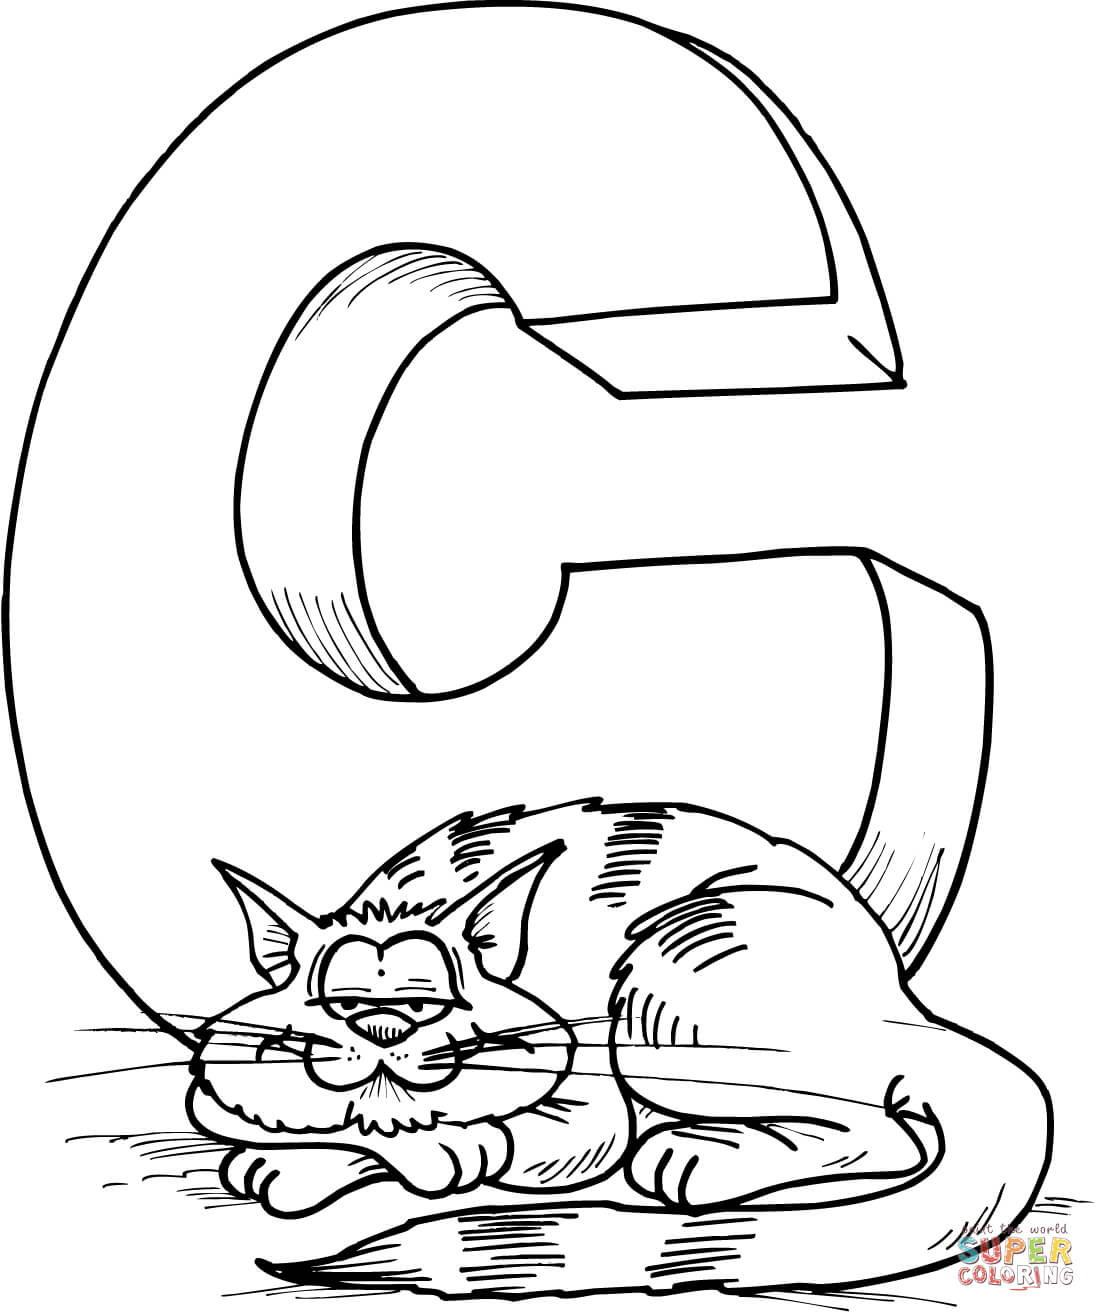 Free coloring pages letter i - Free Coloring Pages Letter I Page Free Printable Coloring Download